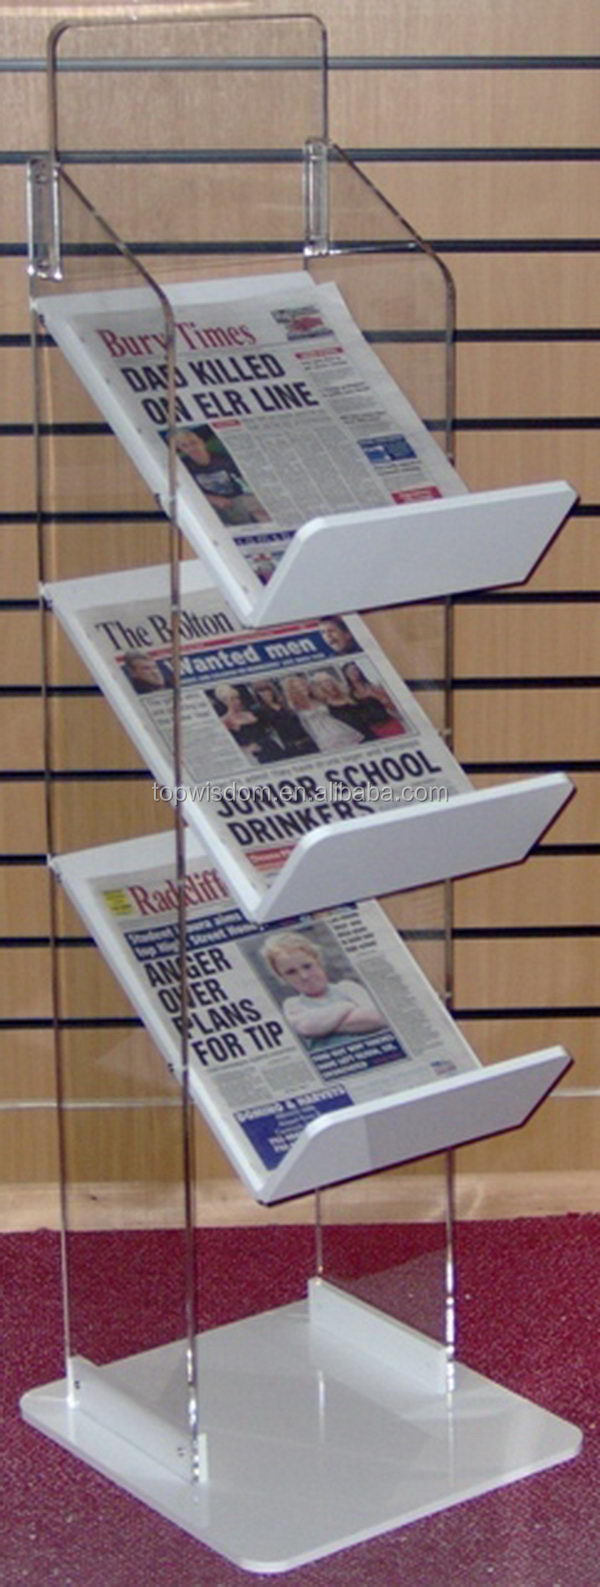 design bestselling hotel newspaper rack  buy hotel newspaper  - design bestselling hotel newspaper rack  buy hotel newspaper rackdesignhotel newspaper rackbestselling hotel newspaper rack product onalibabacom